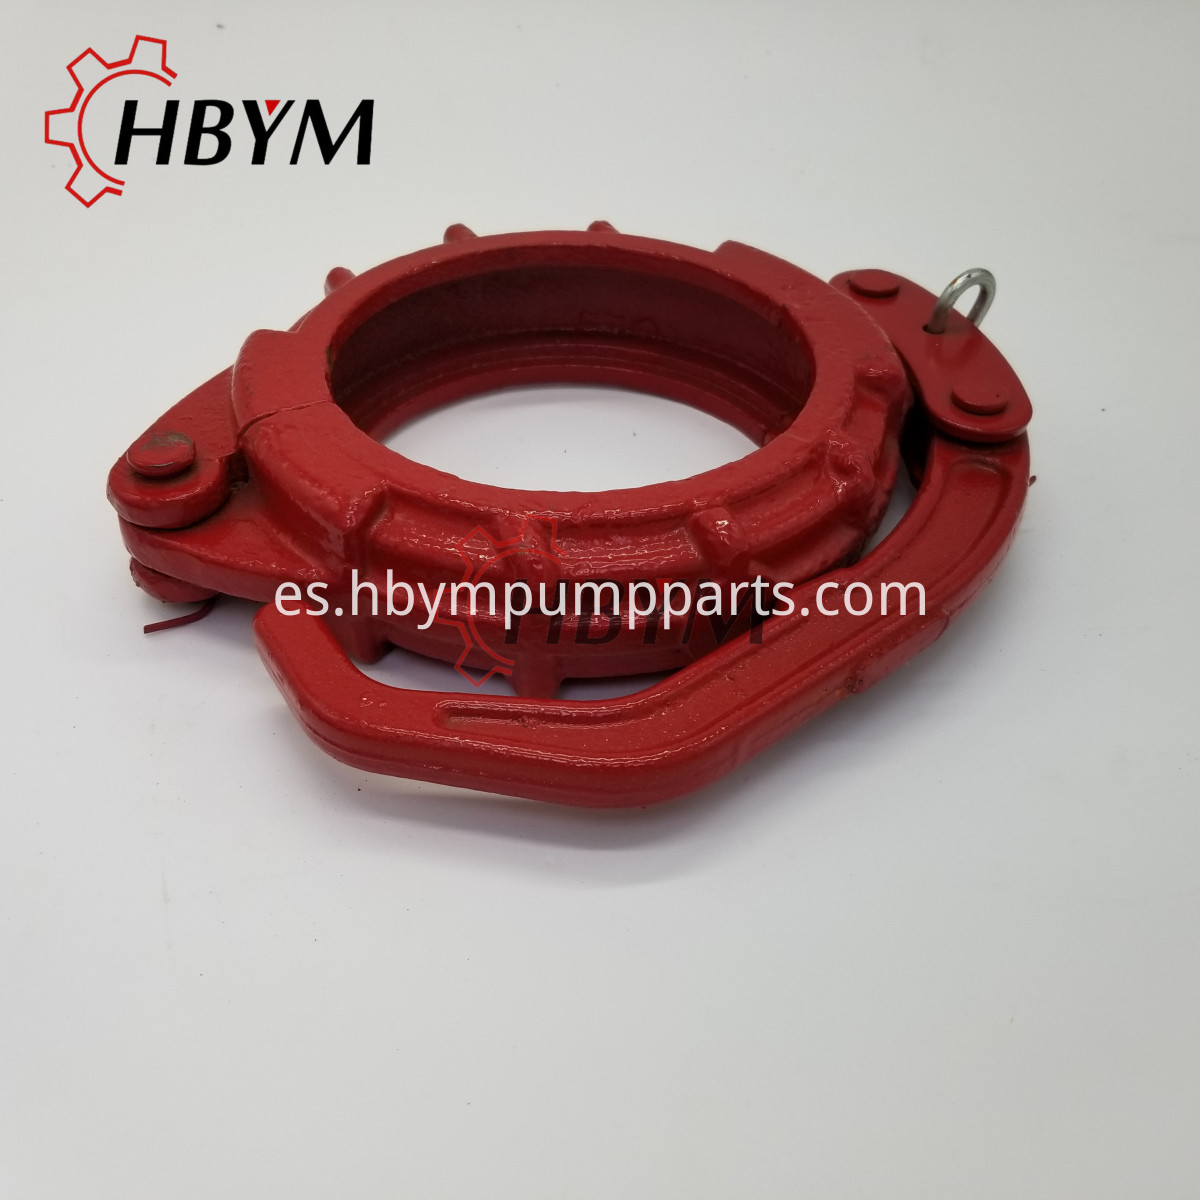 Dn125 Snap Casting Clamp 2